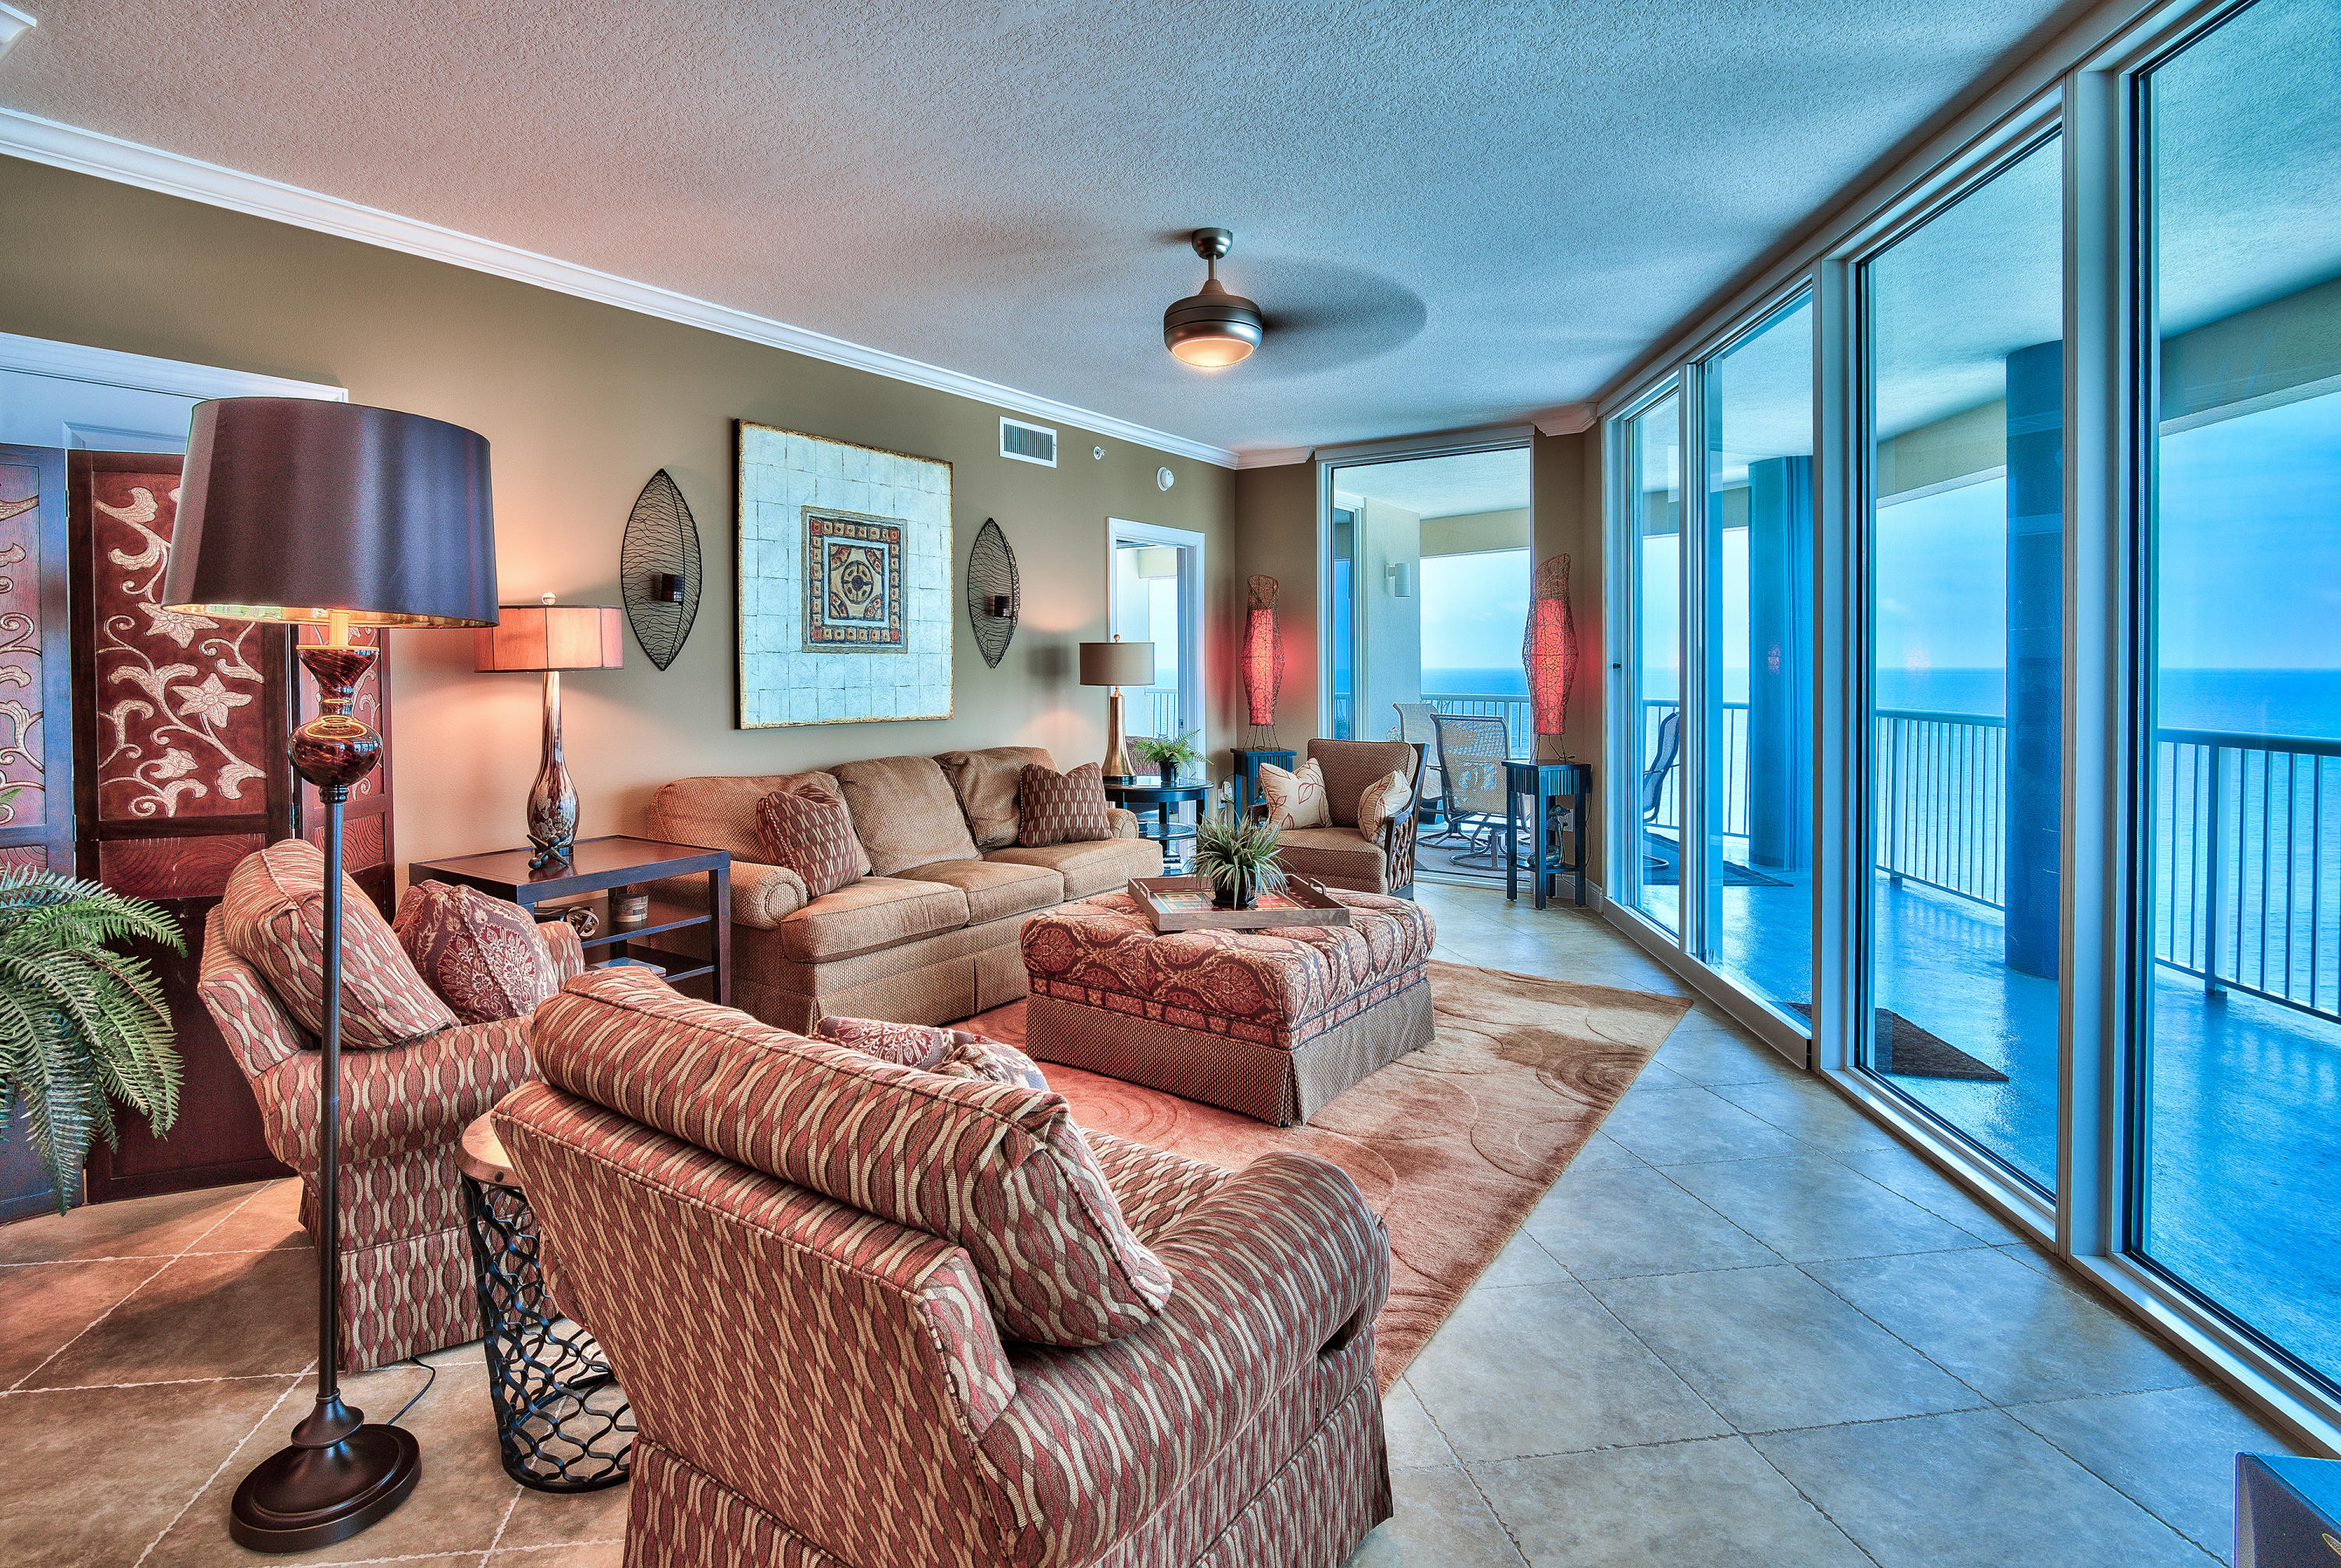 Unique luxury condo offering features that are unmatched along the Emerald Coast! Unit #508 is easily the most exquisite unit at Palazzo and is a breathtaking 3BR/3BA furnished West end corner unit. Unit is being sold fully furnished and decorated with two balconies and storage locker P4-03. Enjoy panoramic views of the sugar white sandy beaches and Emerald waters of the Gulf of Mexico. Let the sunshine in! Floor to ceiling glass throughout the unit maximizes the spectacular views and the glass has additional tinting to block UV rays keeping the unit cooler on summer days. Sunsets are stunning from either of your two private Gulf front balconies, totaling 415 sq. ft. The spacious, open floor plan features raised 9' ceilings and 20'' diagonal tile floors throughout. Kitchen features thick solid granite countertops and breakfast bar, custom stone tile work on the backsplash above the kitchen countertops and below the island bar, recessed lighting, upgraded wood cabinets, and stainless steel appliances. The spacious master bedroom has stunning views of the Gulf of Mexico by the surrounding floor to ceiling windows. There is a large walk-in closet and an on-suite master bathroom with double vanity, Whirlpool tub, and separate walk-in shower. The master bathroom has been upgraded with new granite countertops and is especially unique with the custom tiled shower. The guest bedroom also has an upgraded on-suite bathroom and separate, private balcony facing West. A private guest balcony is very rare for condos in the area, so this is definitely a special feature of the unit. There is an additional guest bedroom and bath that is stunning as well. This unit sleeps 8+ guests and has a full size washer/dryer closet with storage. This unit is in pristine condition.   Palazzo amenities include elevated Gulf side pool, hot tub, complimentary beach service (Mar-Oct), fitness facility, and meeting room. At Palazzo you are on the desirable West End of Panama City Beach, 1 mile from Pier Park shopping center, and less than 20 minutes from the Panama City Beach International Airport. Unlike the competition, Palazzo is a low density building consisting of only 129 direct Gulf Front units and has four levels of covered Gulf Front parking under the building - no need for massive parking garages with elevated walkways across the street. Do not miss out on this incredible opportunity to own an upgraded corner unit at one of the finest condominiums in Panama City Beach! Unit #508 truly is the perfect second home, full time residence, or vacation rental.